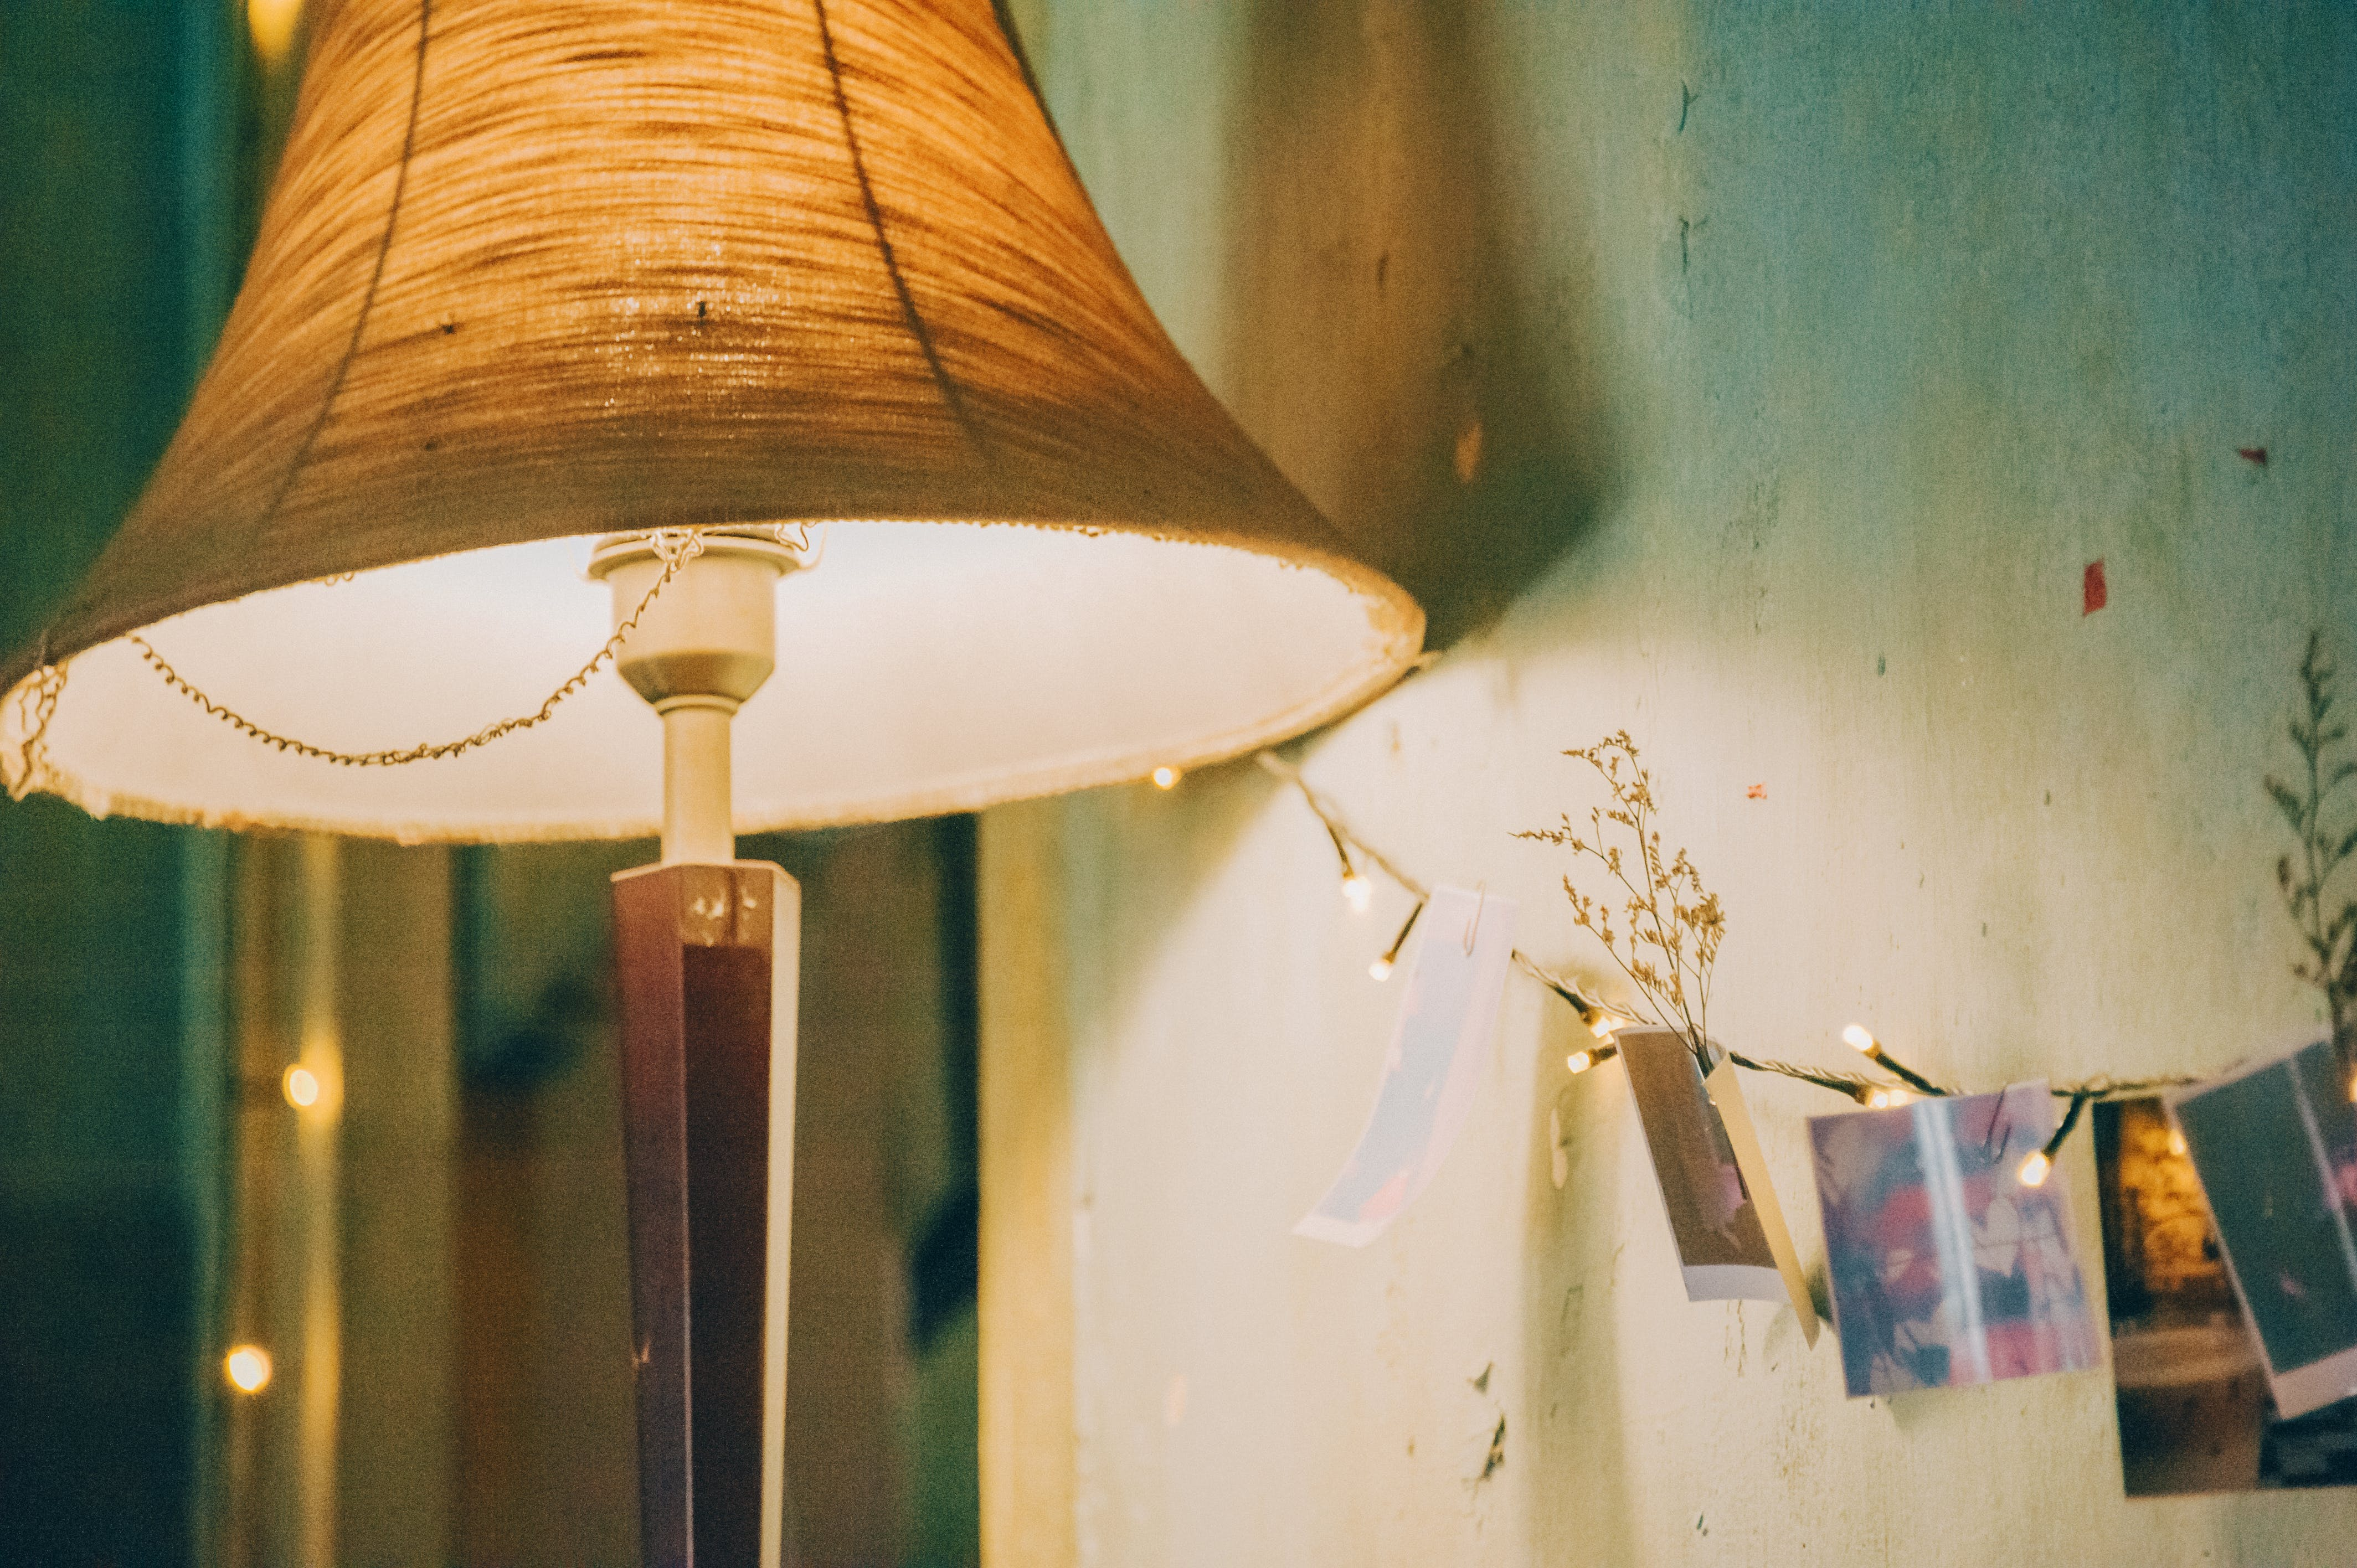 Table Lamp Turned-on